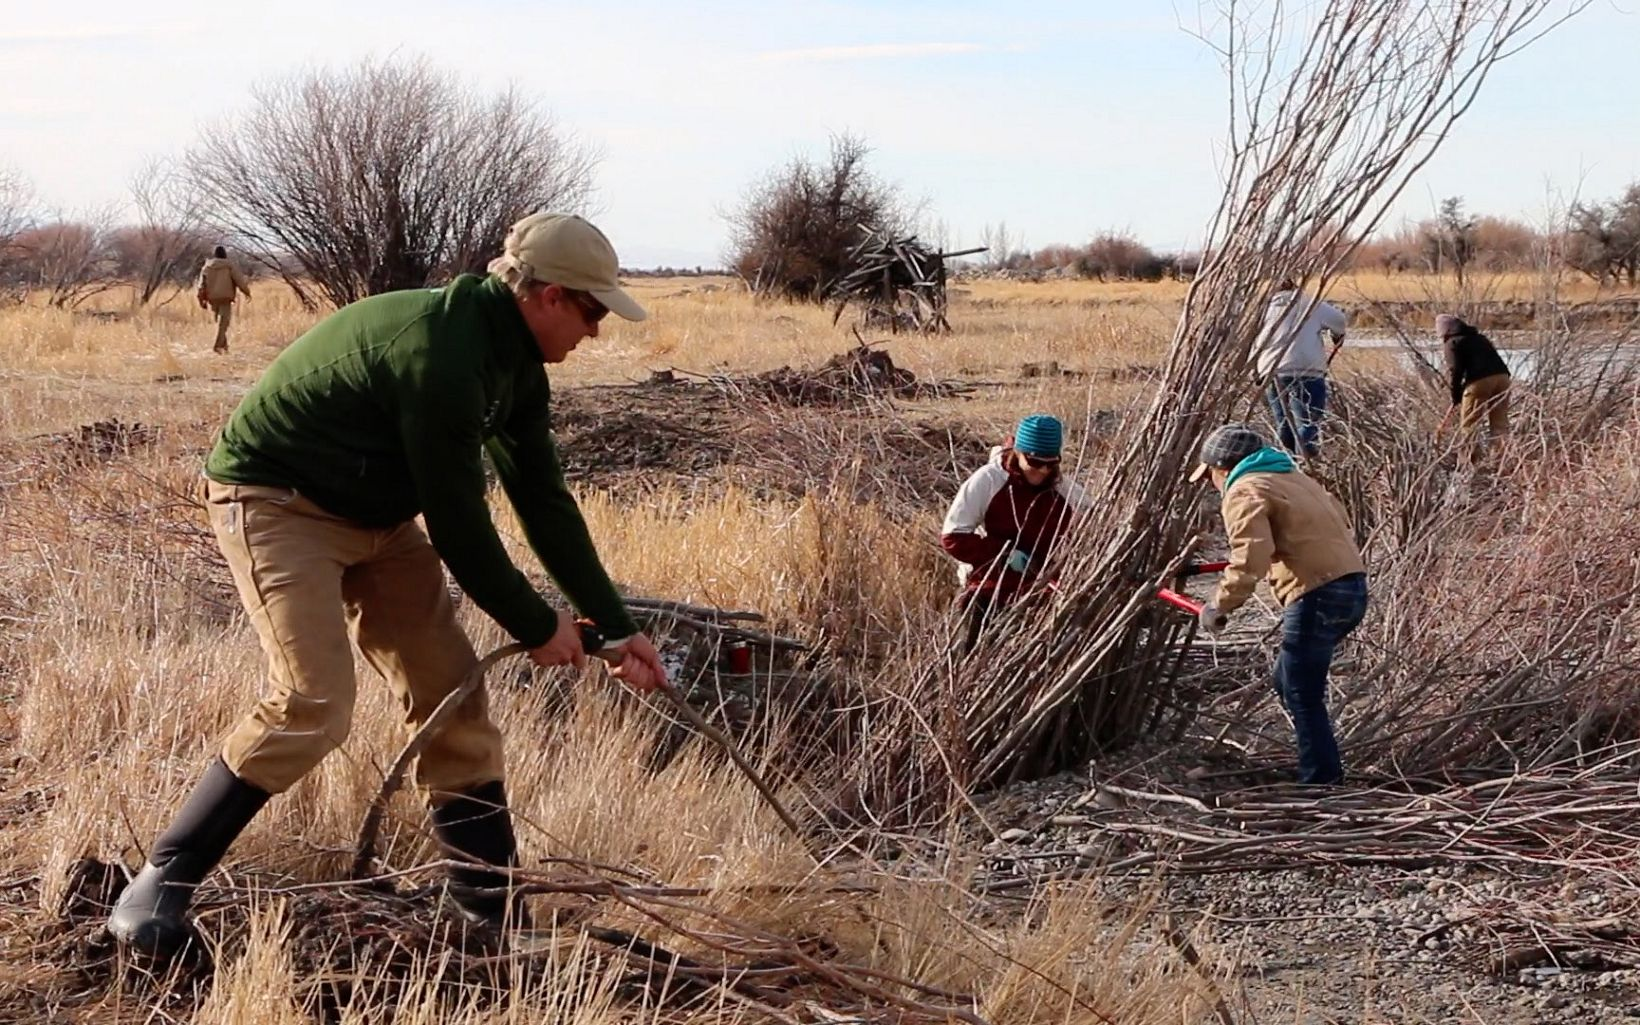 Volunteers harvested and planted thousands of willows to stabilize the banks, cool water and create wildlife habitat.